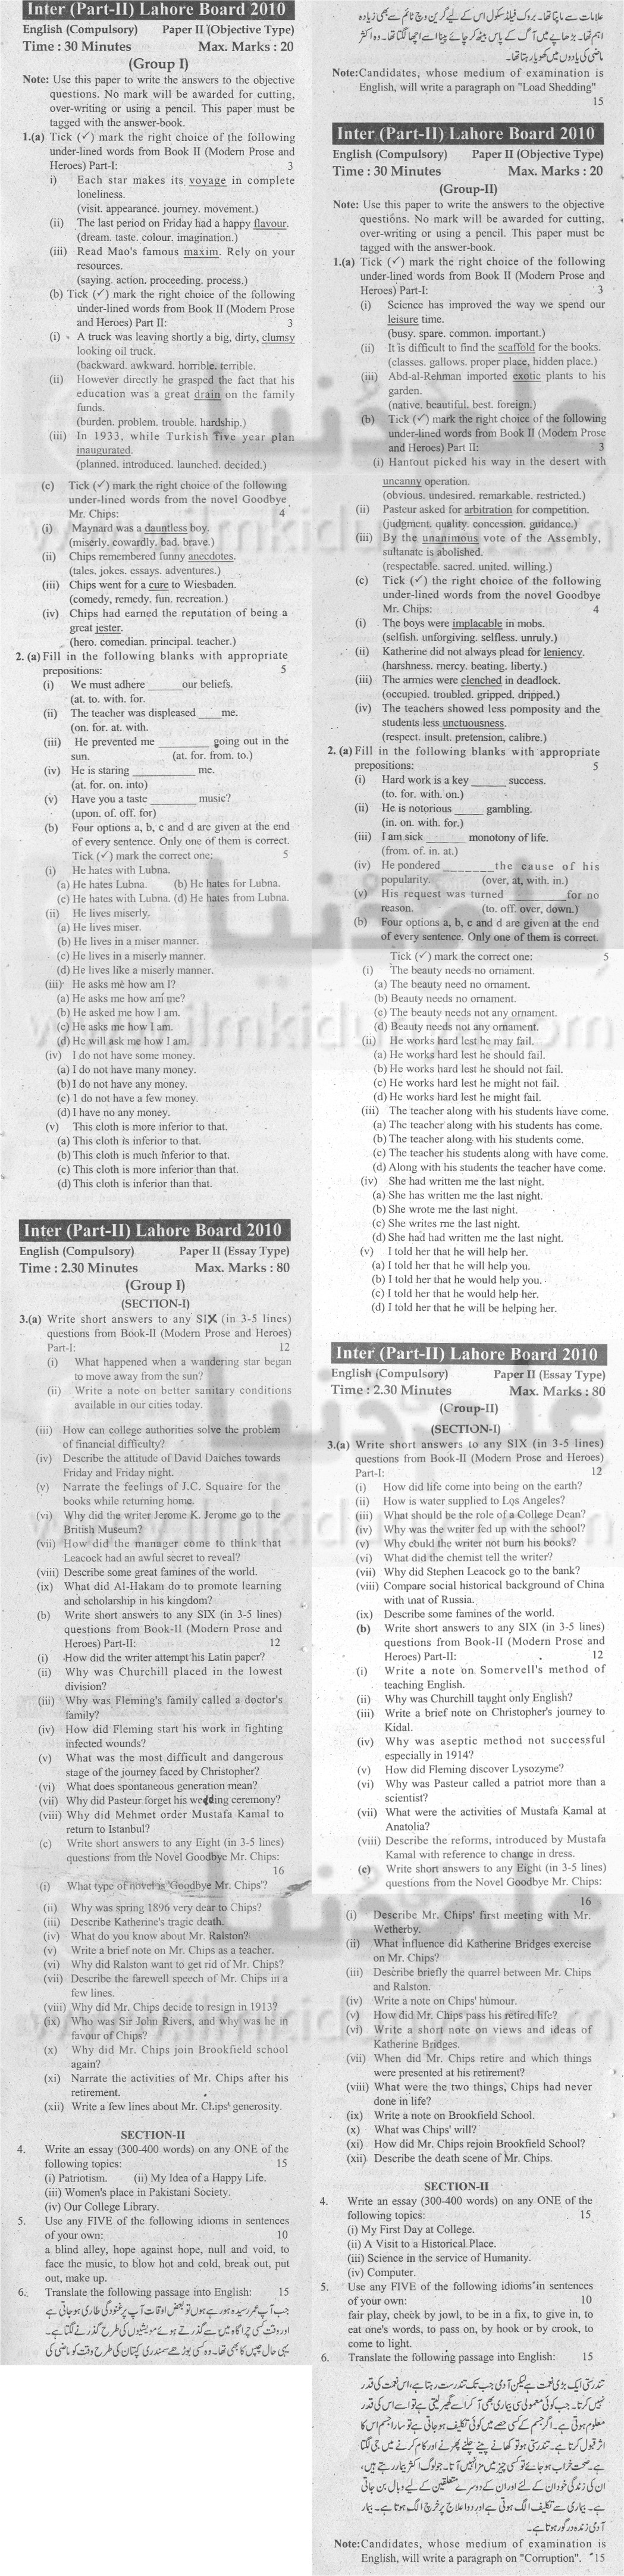 css english essay solved papers The css point, shikarpur, pakistan css solved papers guide 2018 edition by dogar brothers guide details: css book for essay & english (precis & composition.